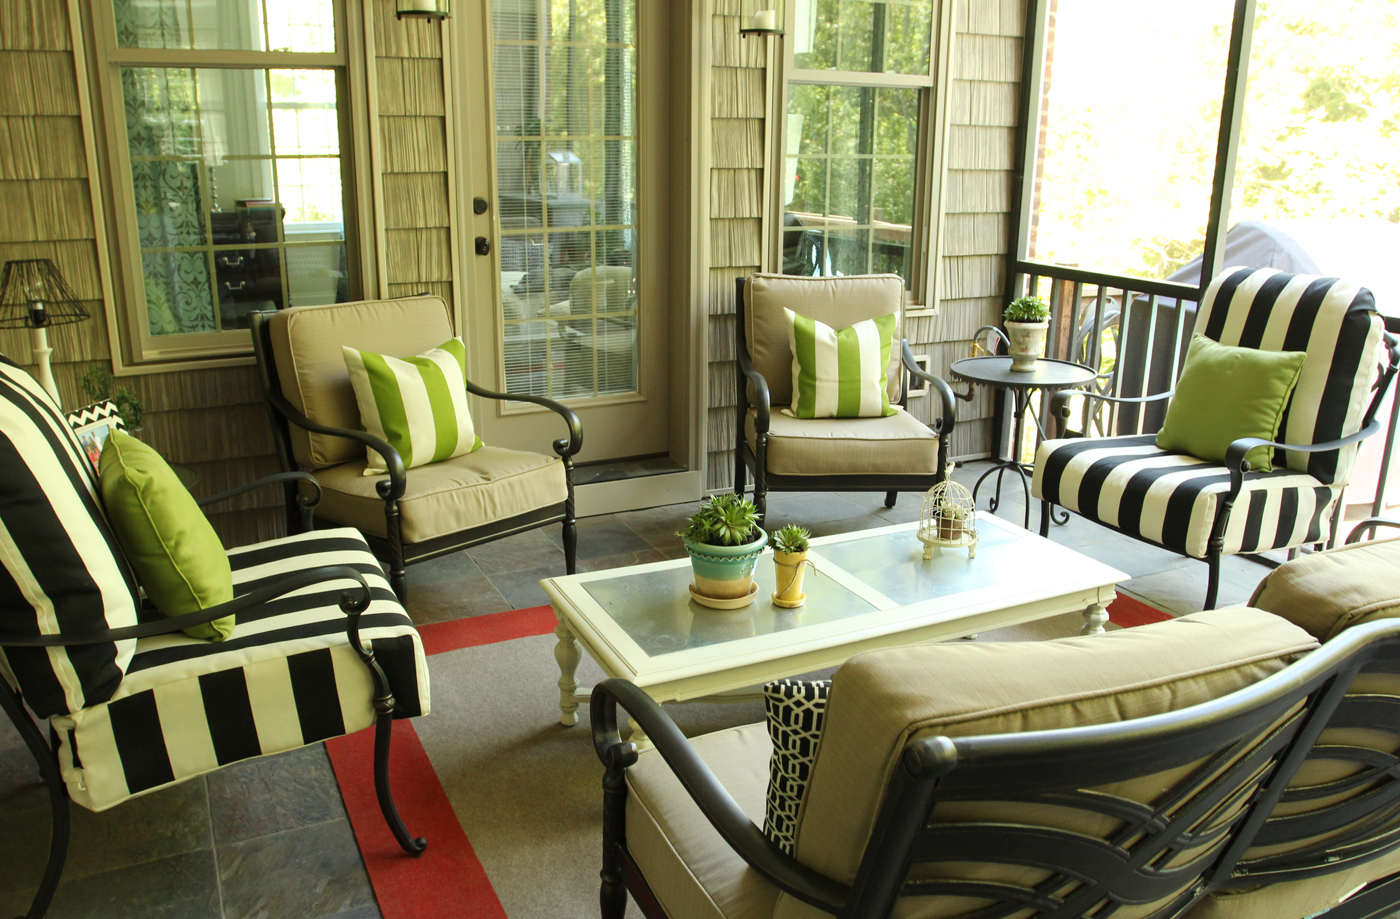 Screen porch furniture ideas joy studio design gallery best design - Screened porch furniture ideas ...